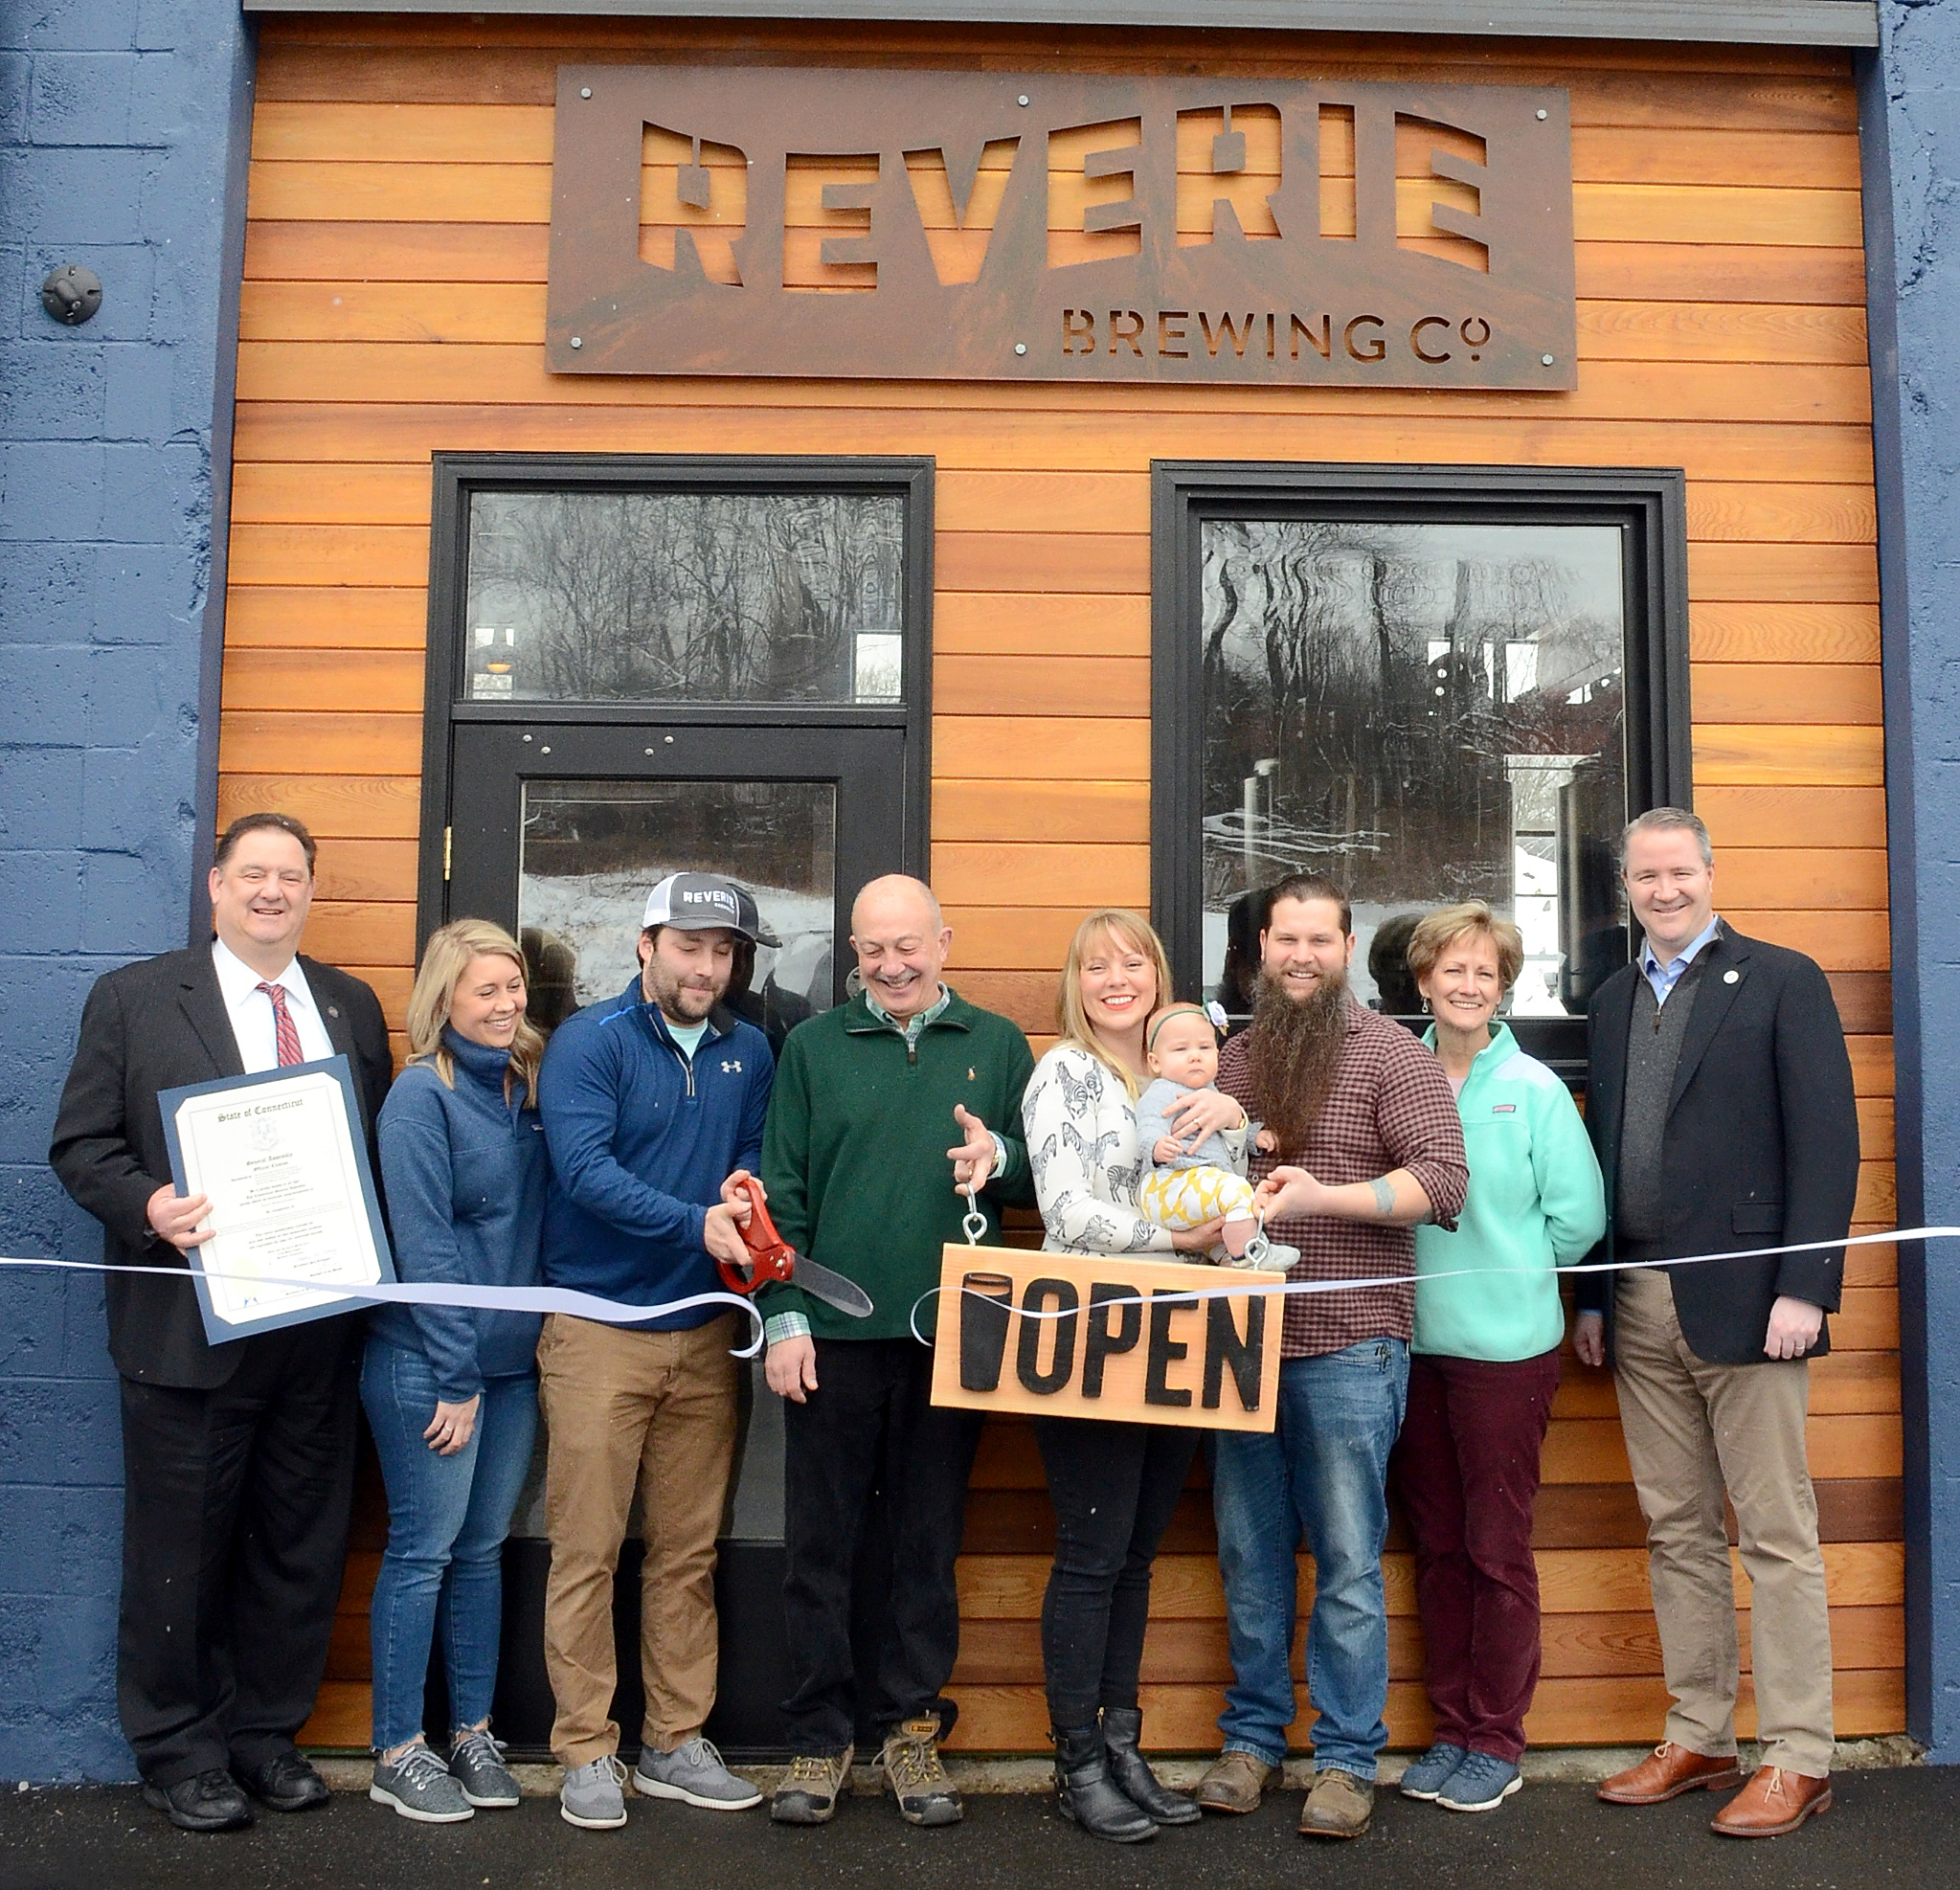 Garage Brewing Restaurant Reverie Brewing Company Serving Up Its Whimsy Ice Cold The